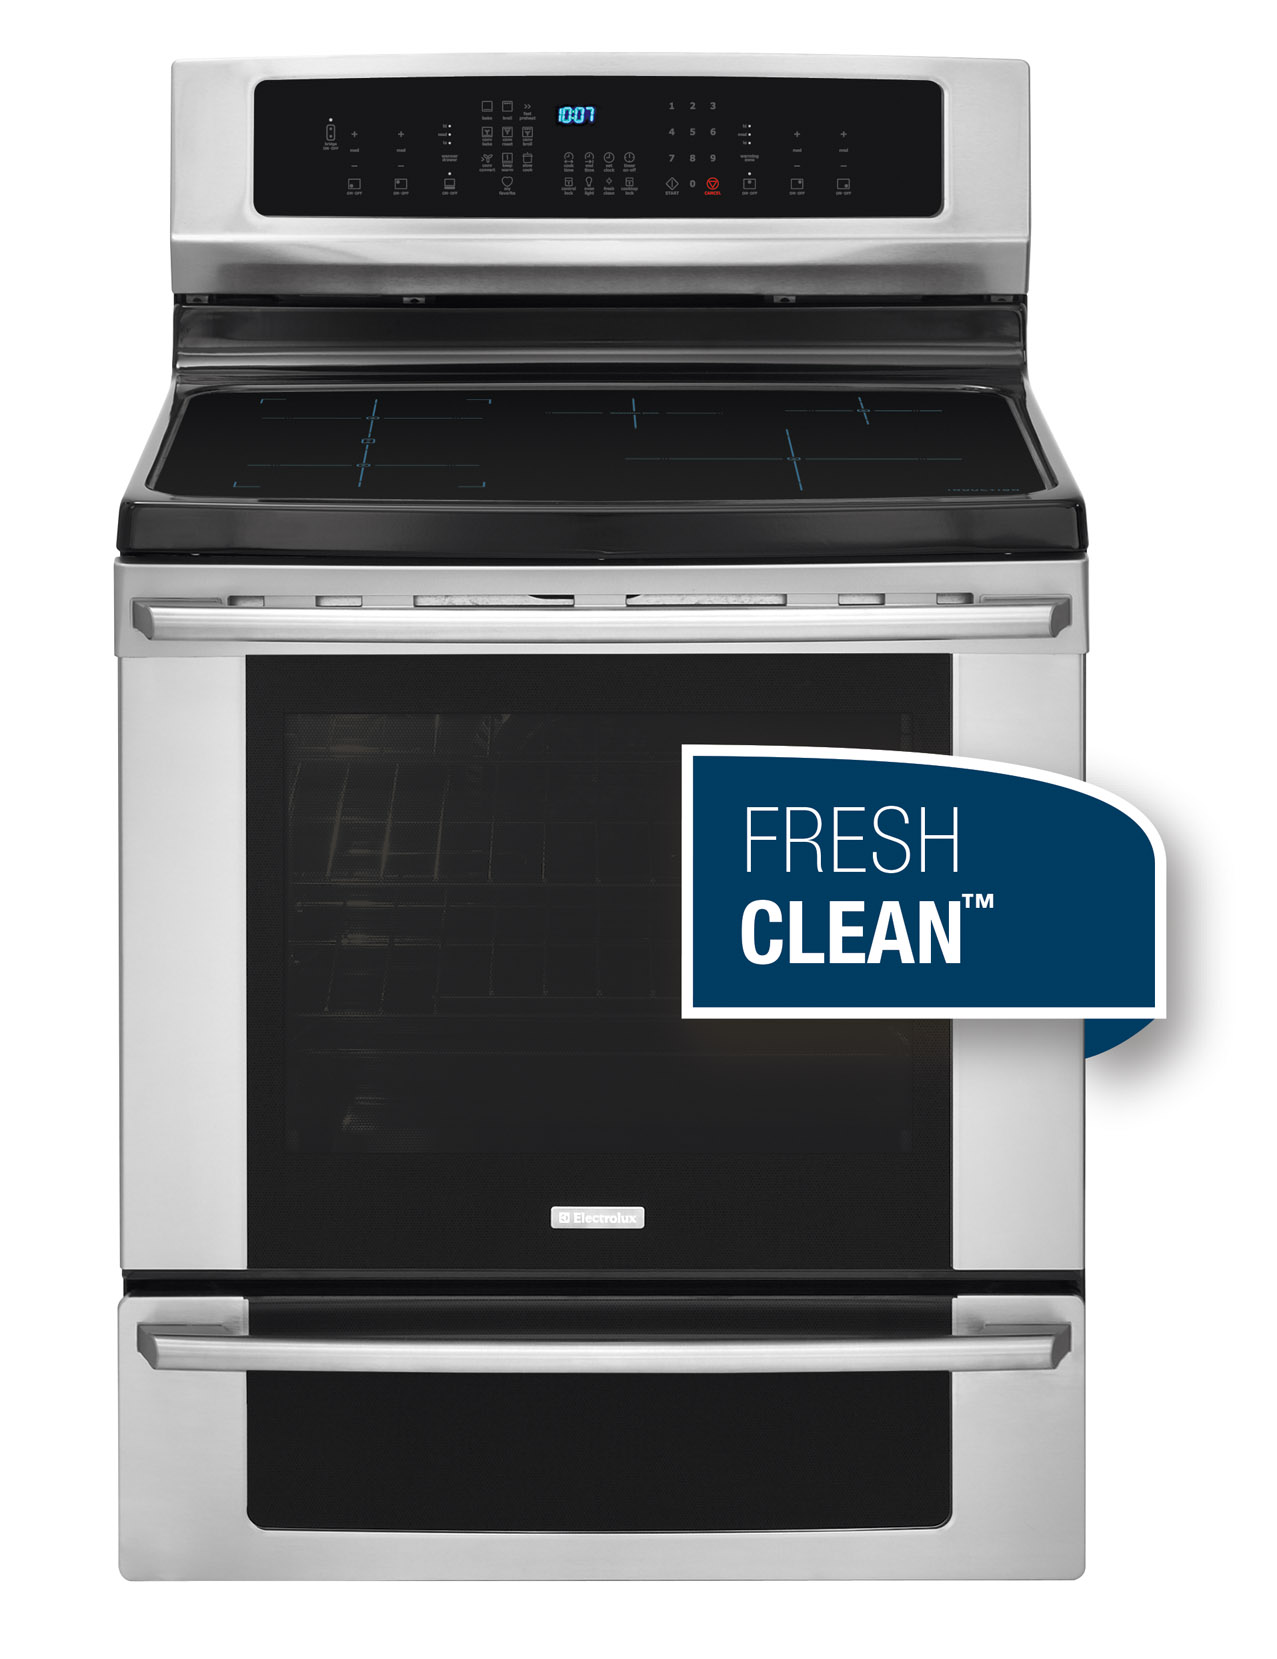 Self Clean Your Oven Without Fumes Or Smoke